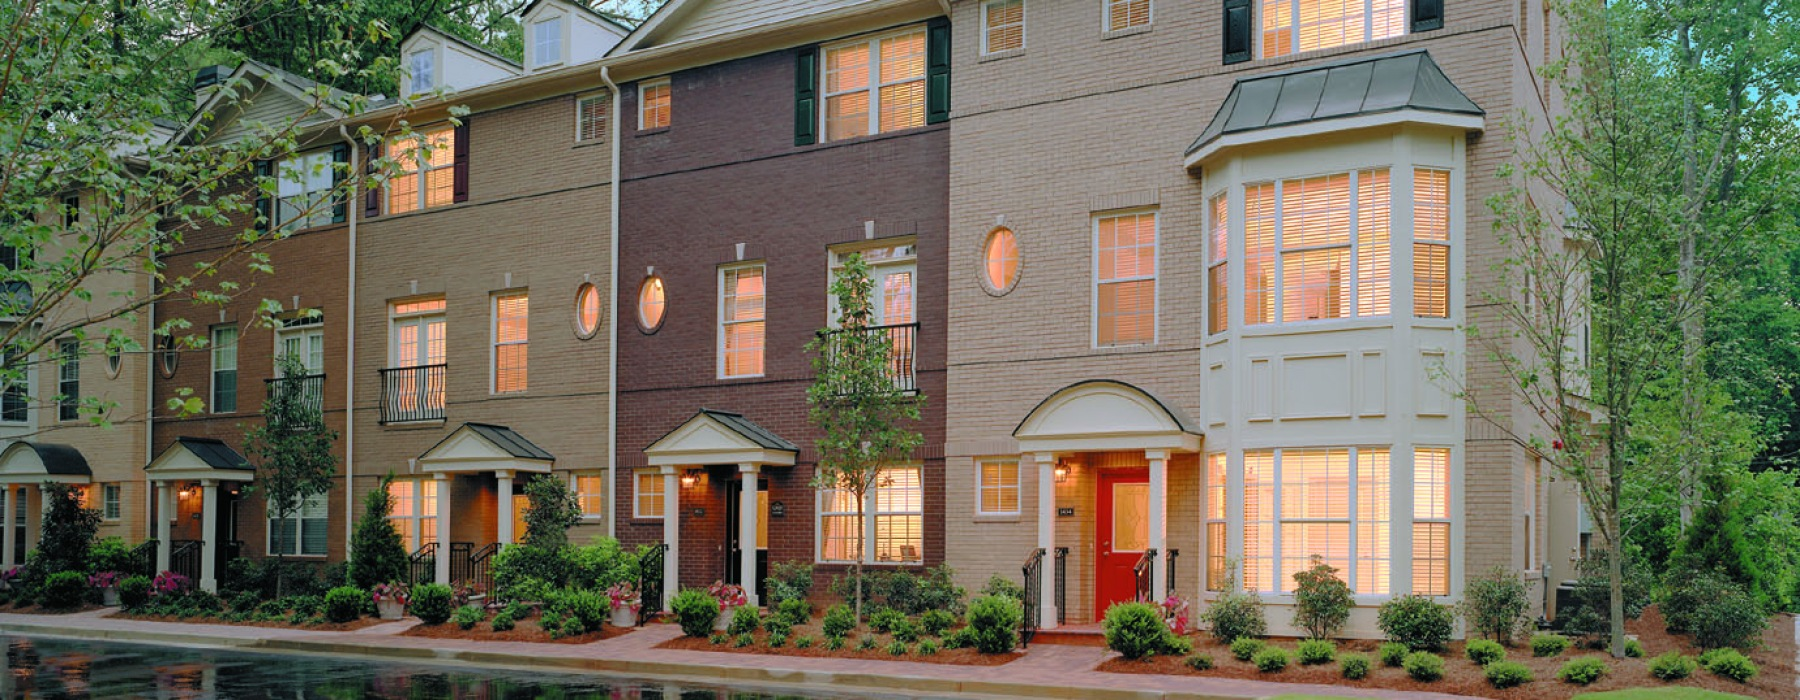 Townhome Entries